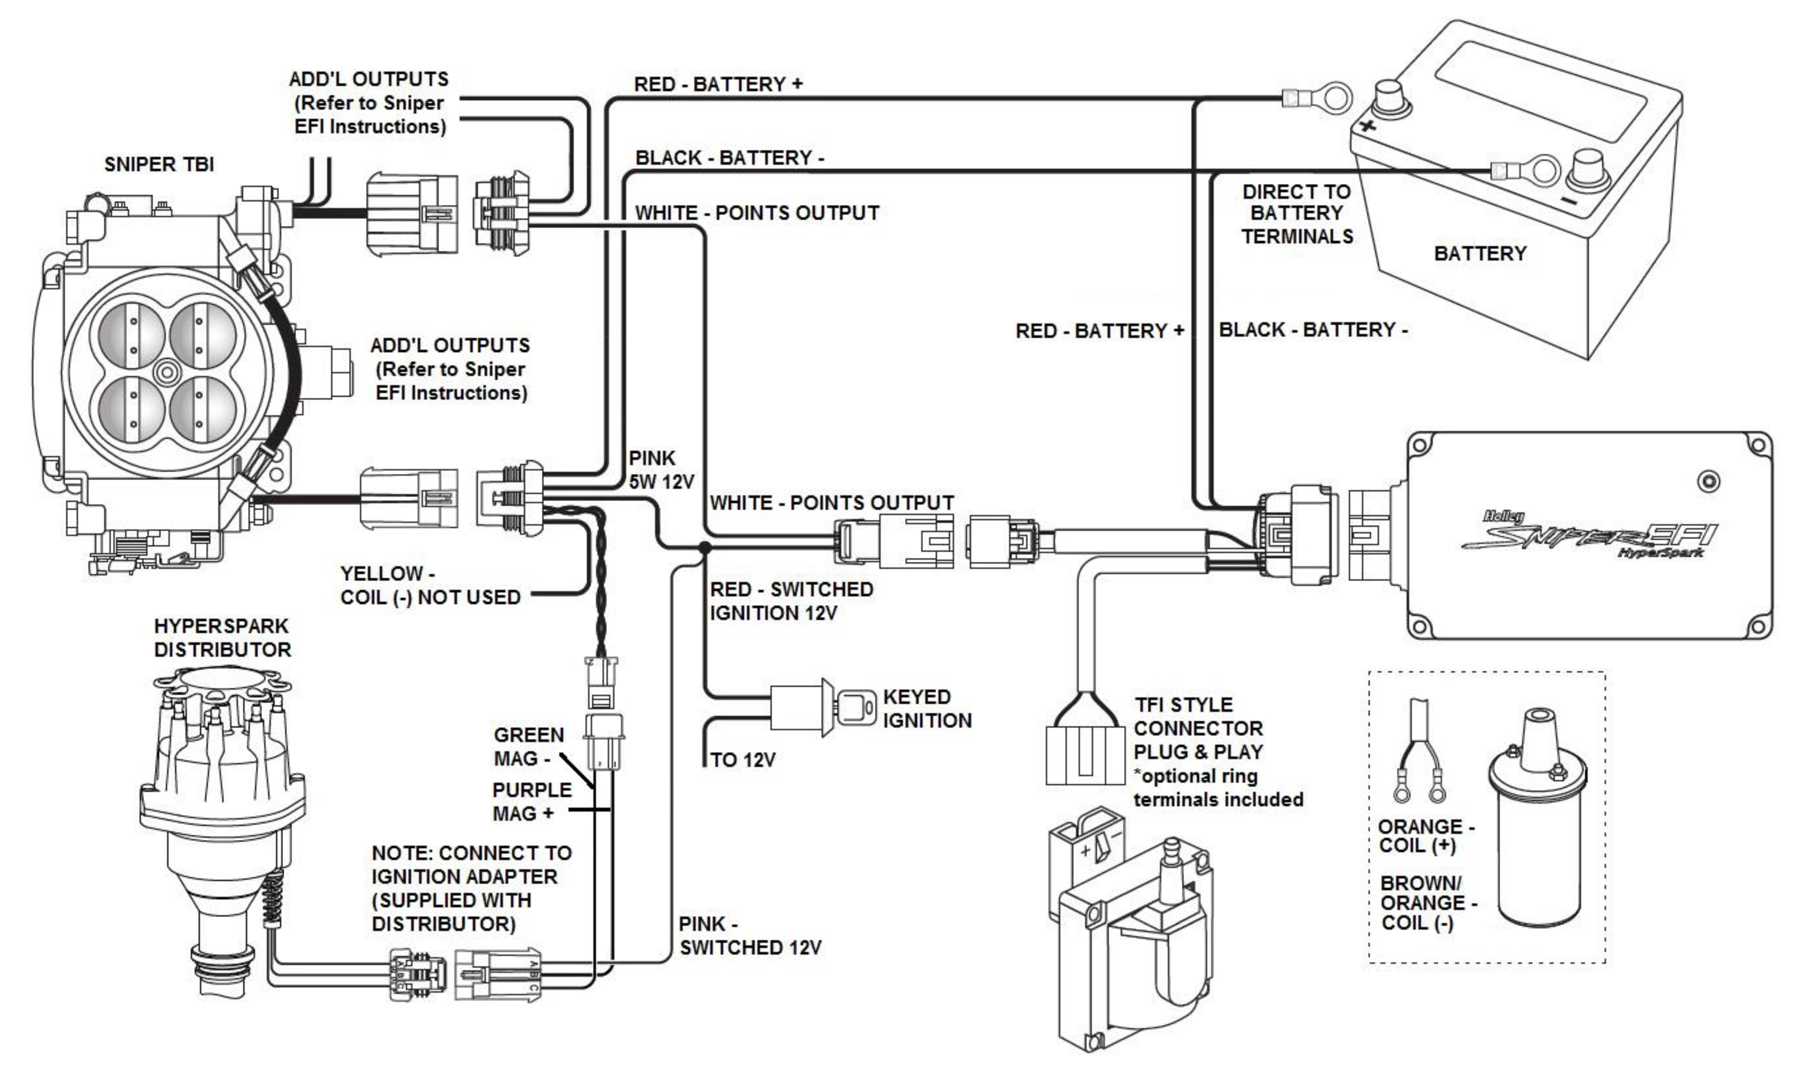 hight resolution of holley tbi wiring diagram wiring diagram insideholley tbi wiring diagram wiring diagram operations holley tbi wiring